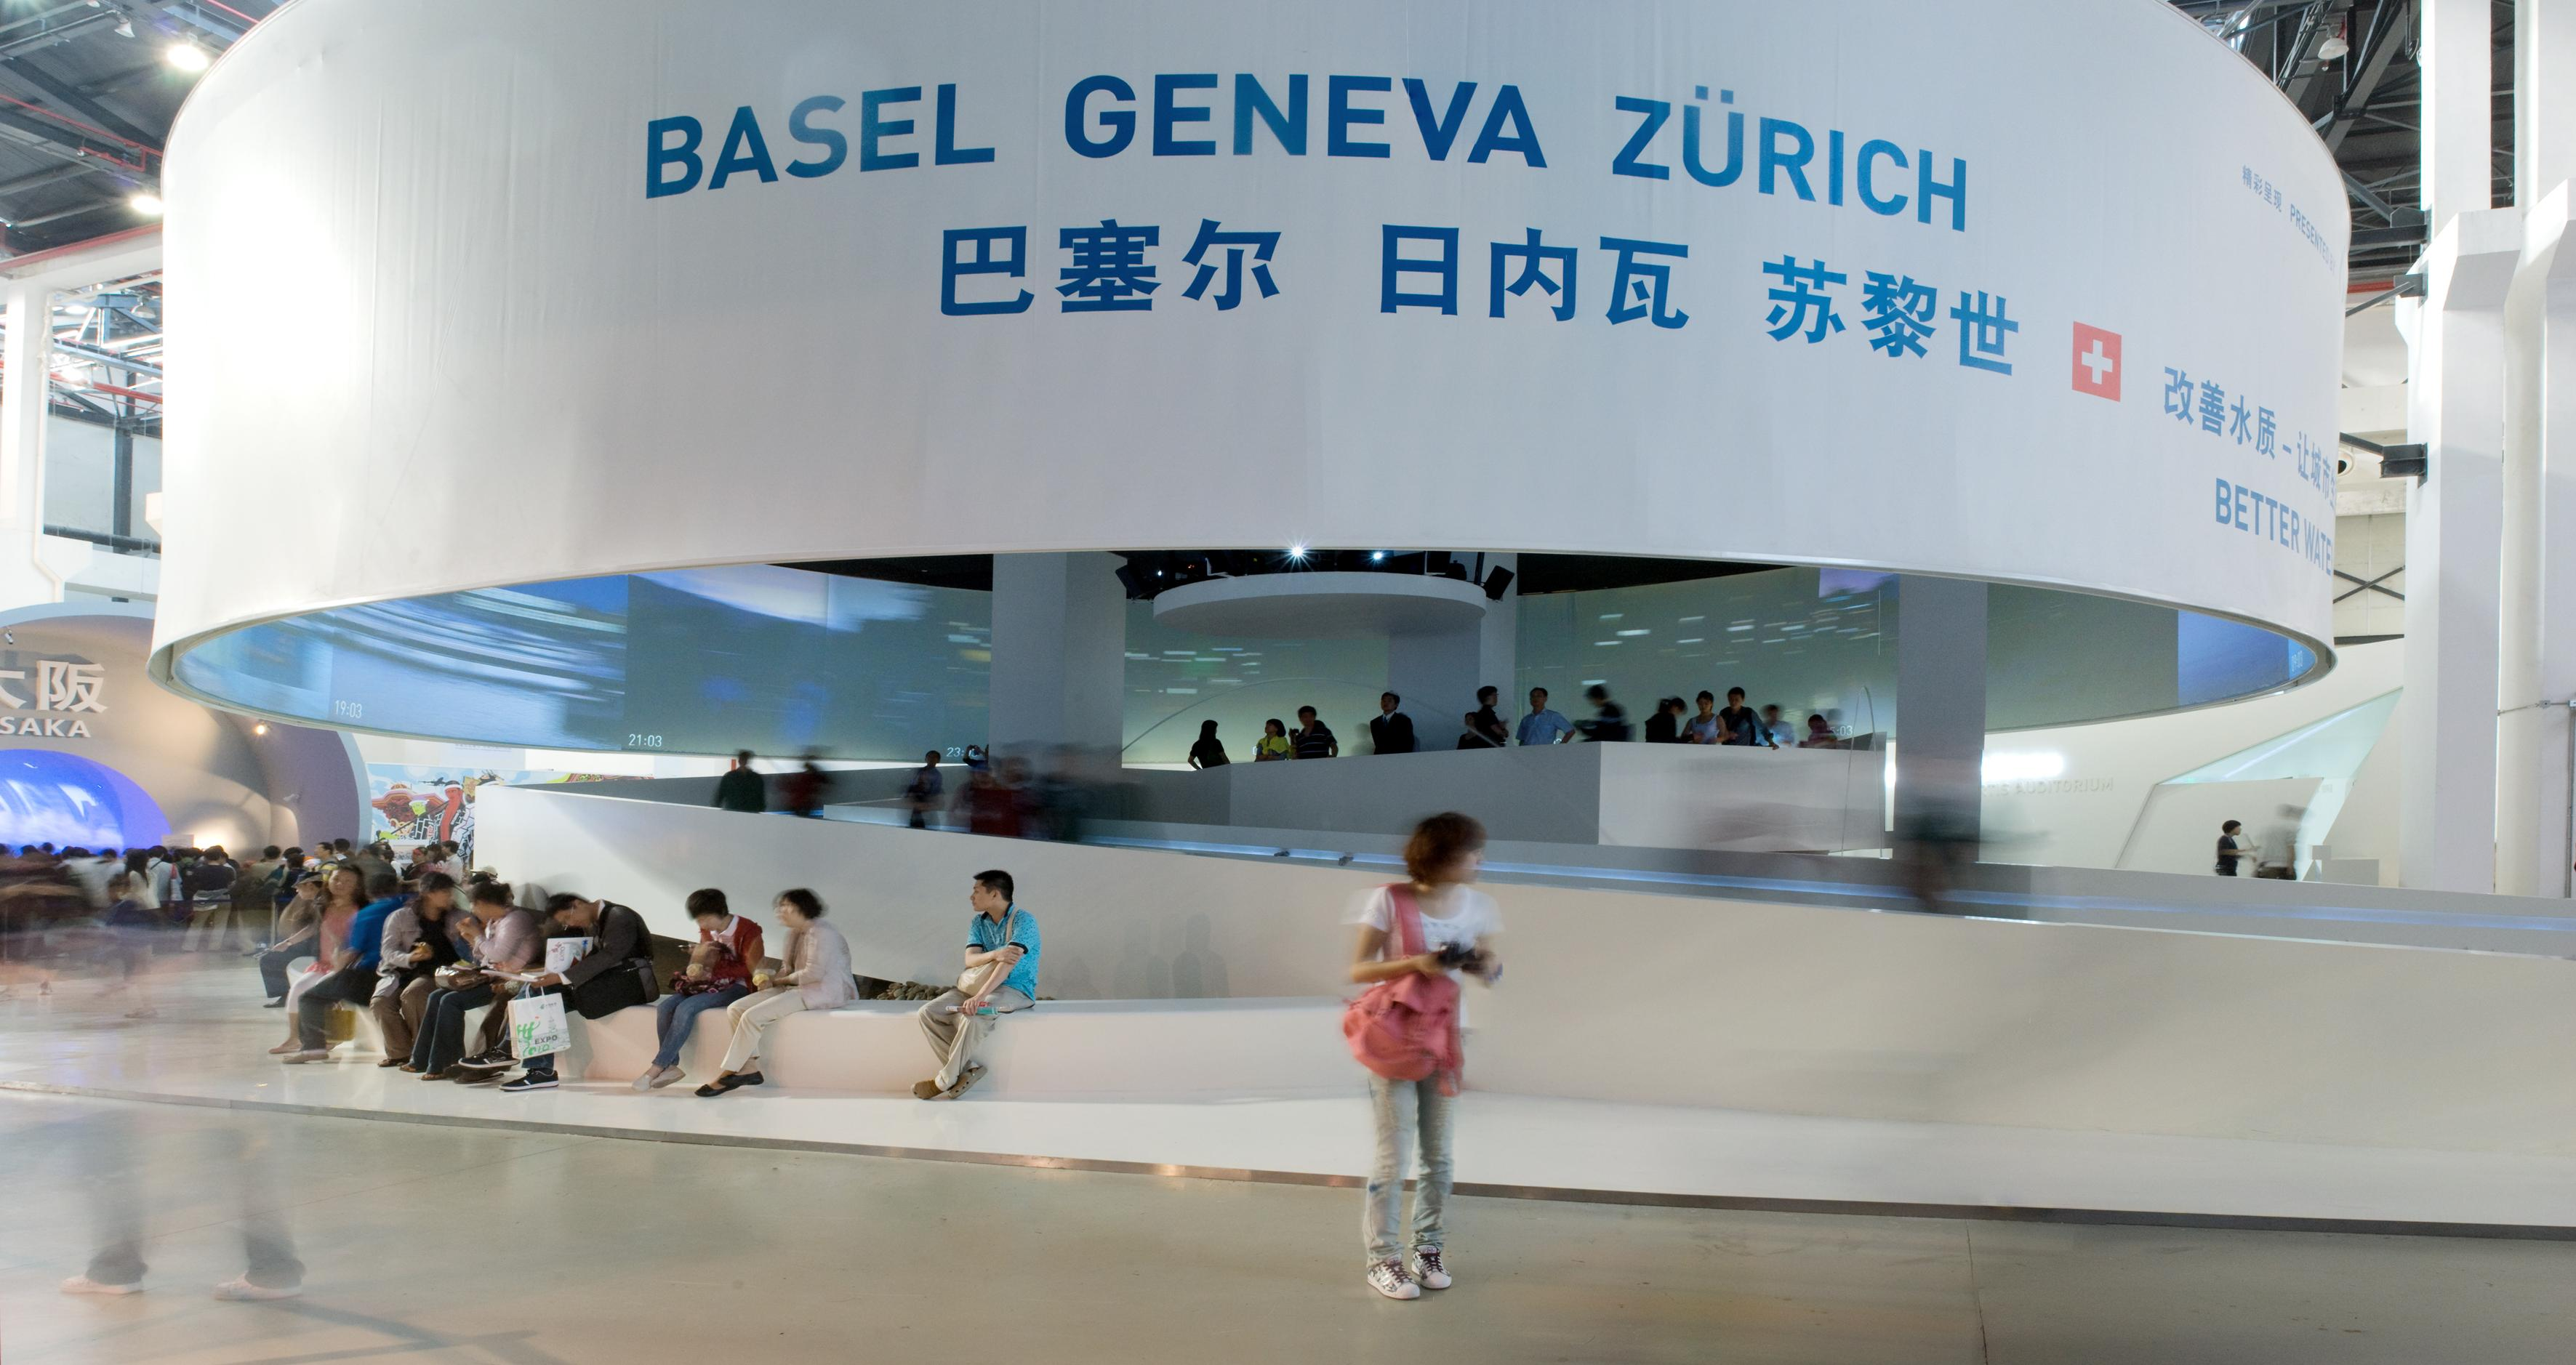 Interior view of the pavilion of Basel, Geneva and Zurich at the World Expo 2010 in Shanghai.